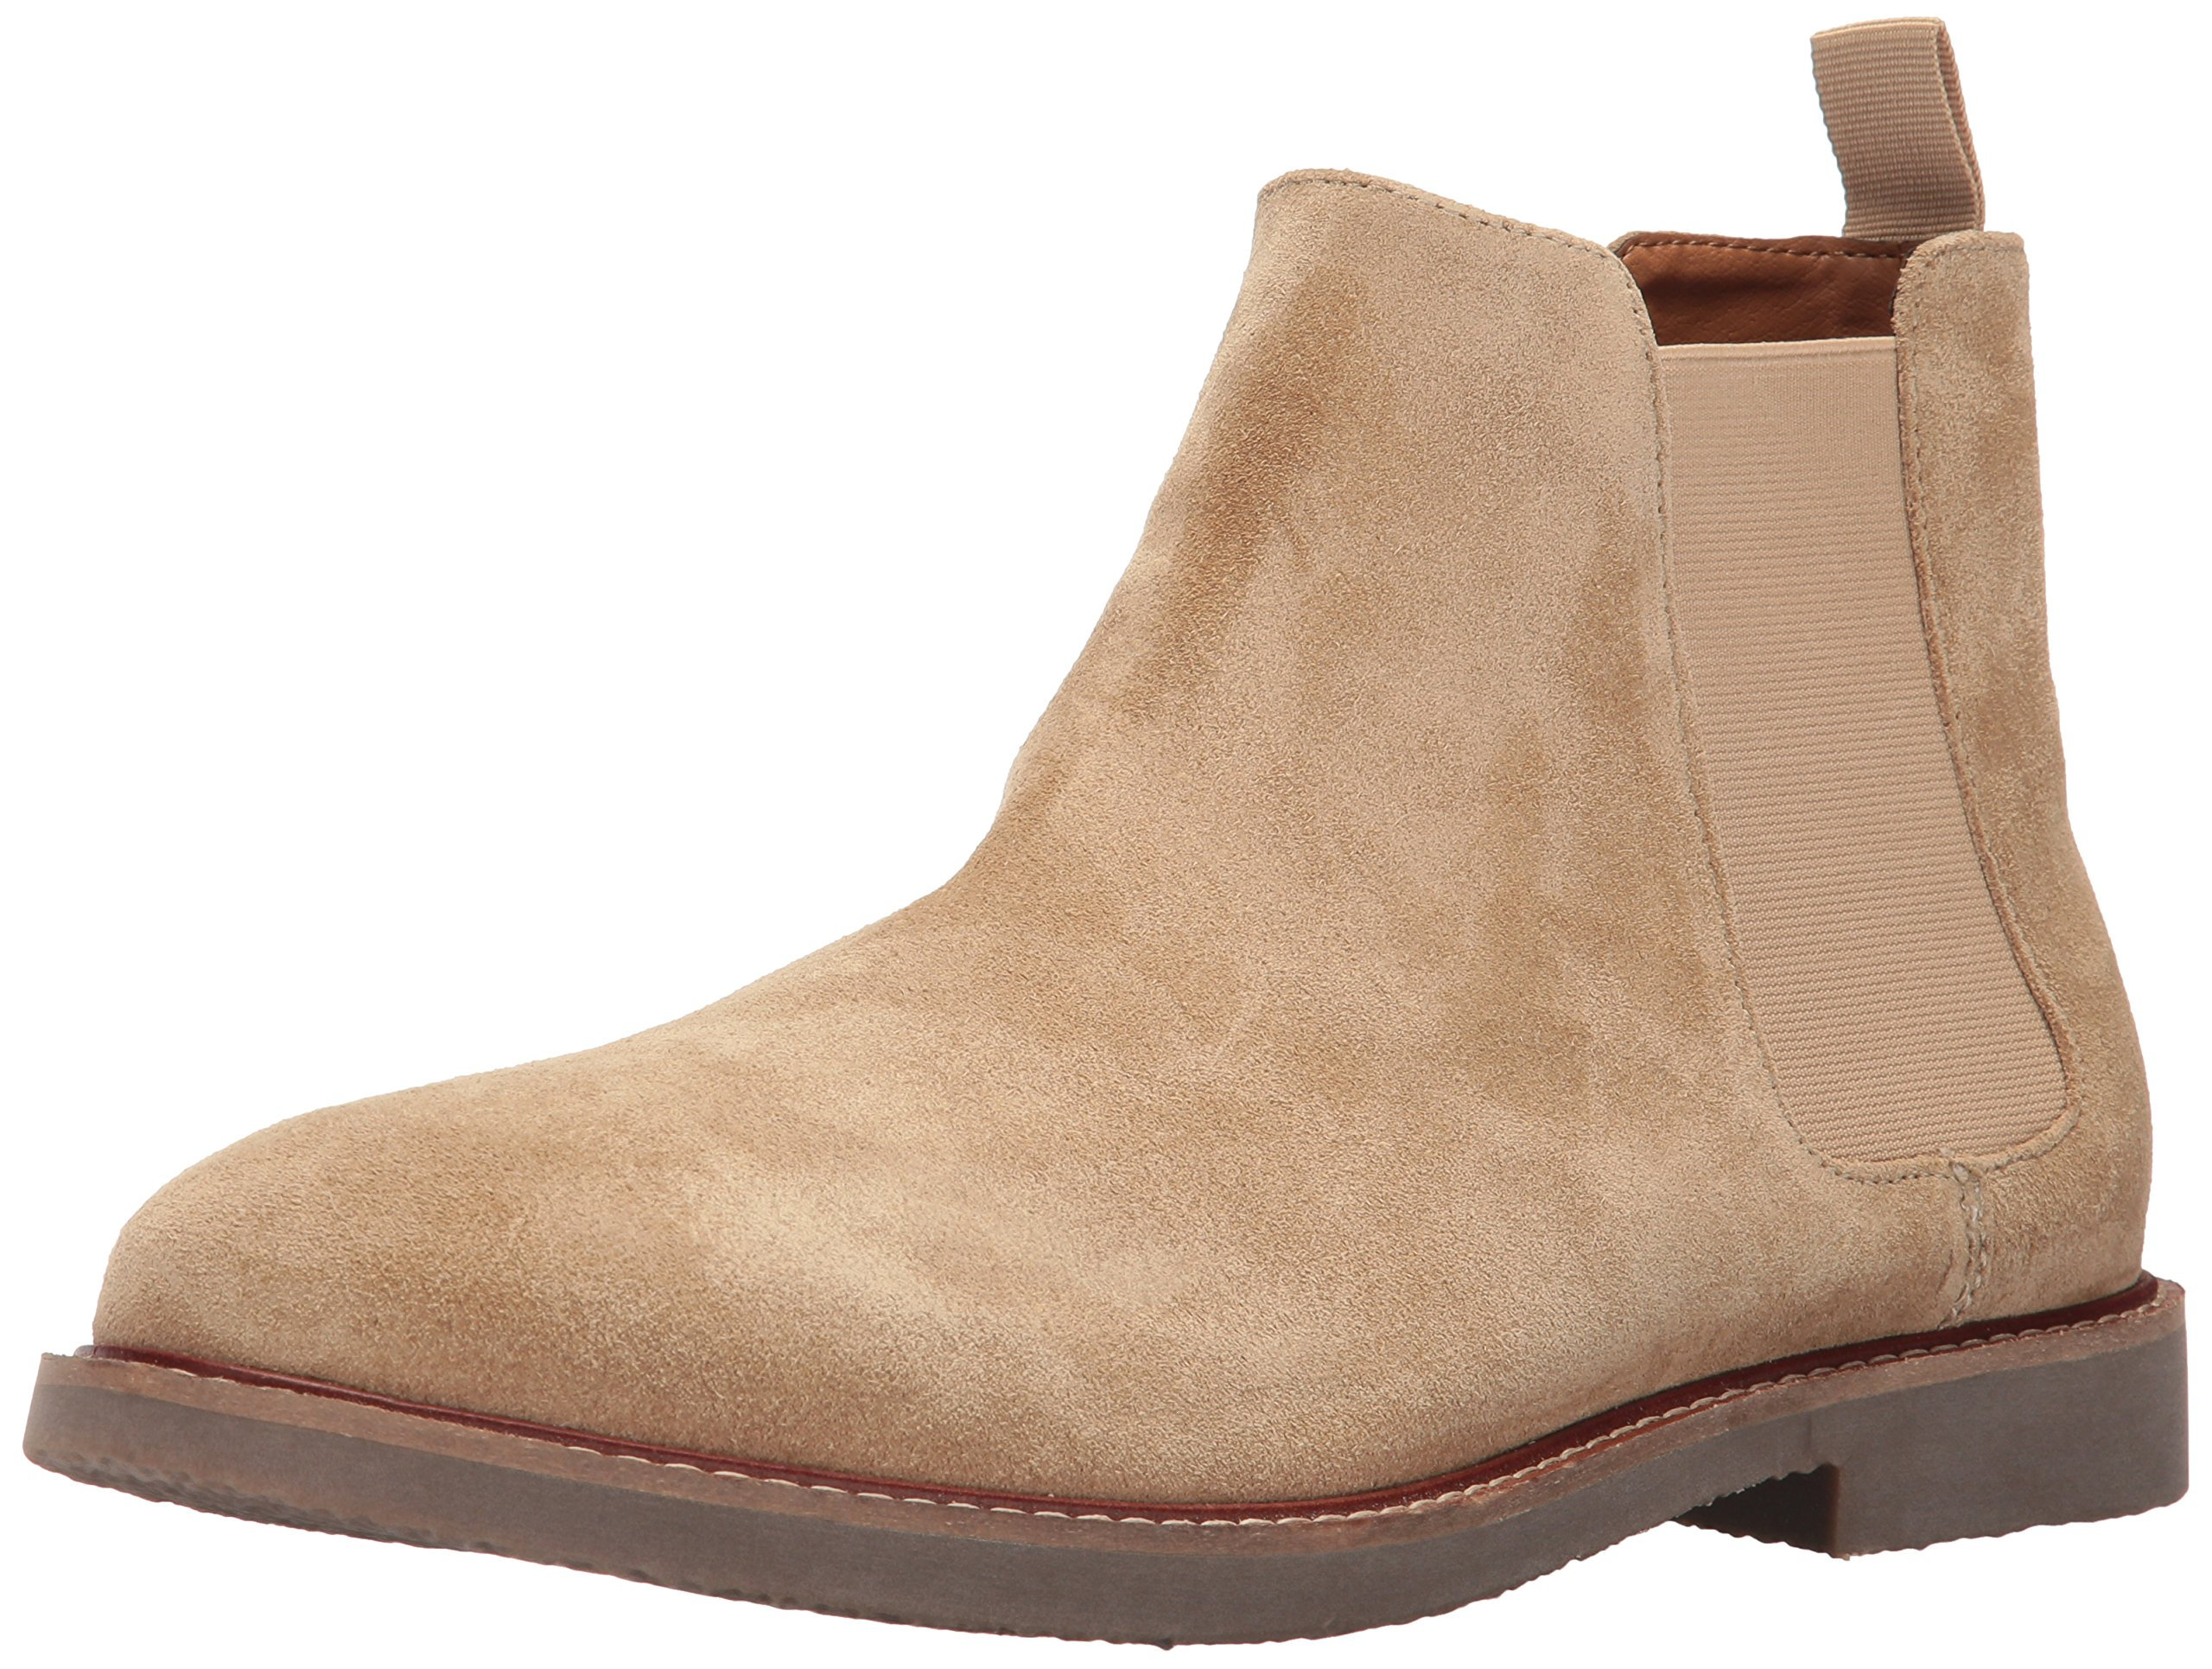 Steve Madden Men's Highline Chelsea Boot, Sand Suede, 11 US/US Size Conversion M US by Steve Madden